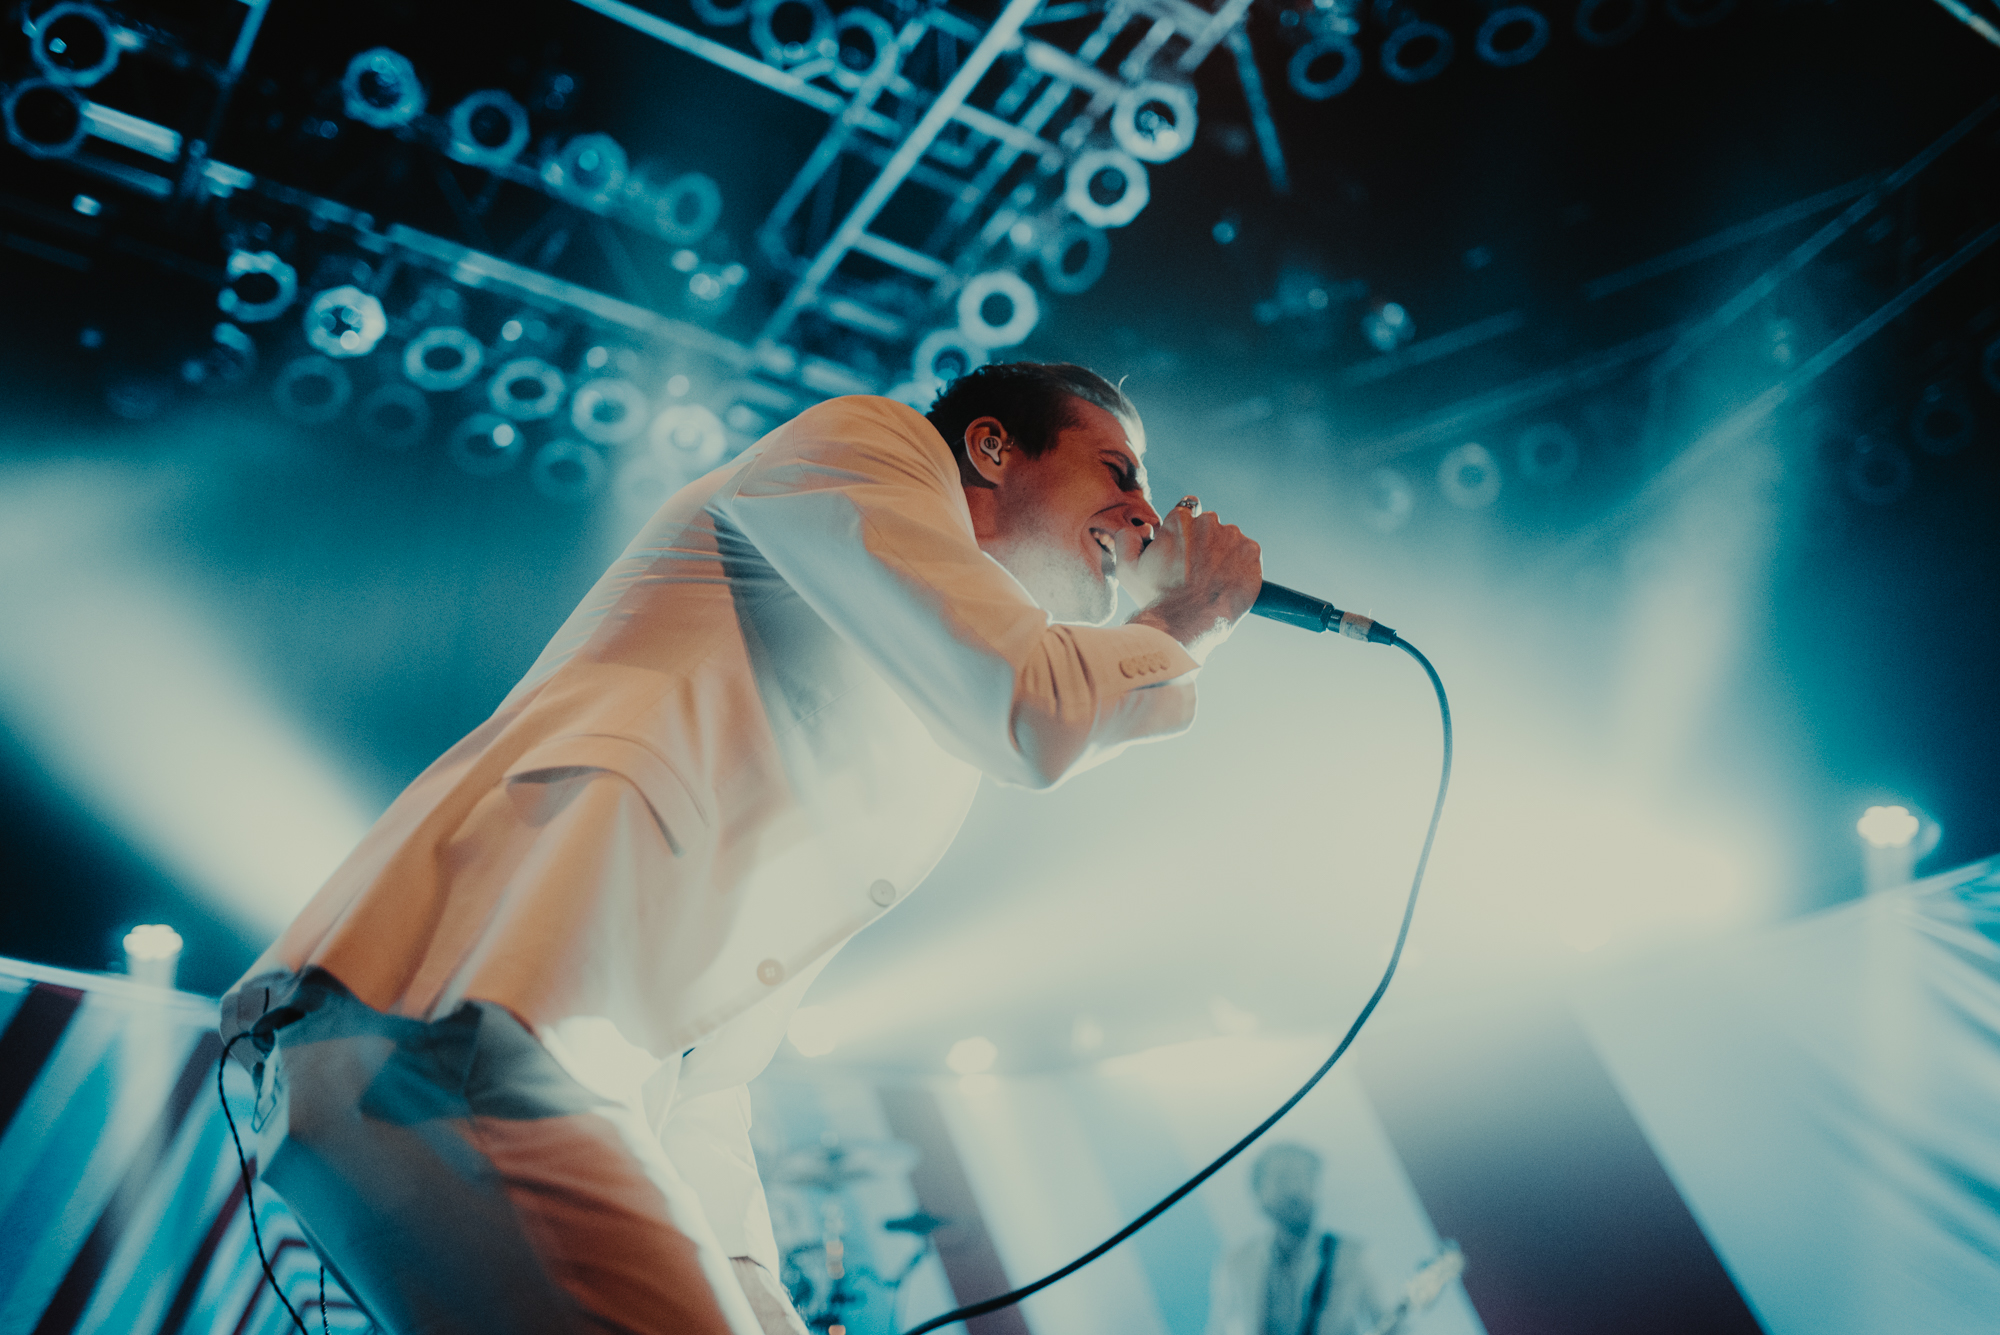 LIVE REVIEW: The Maine bring two scoops of pop rock goodness to Chicago